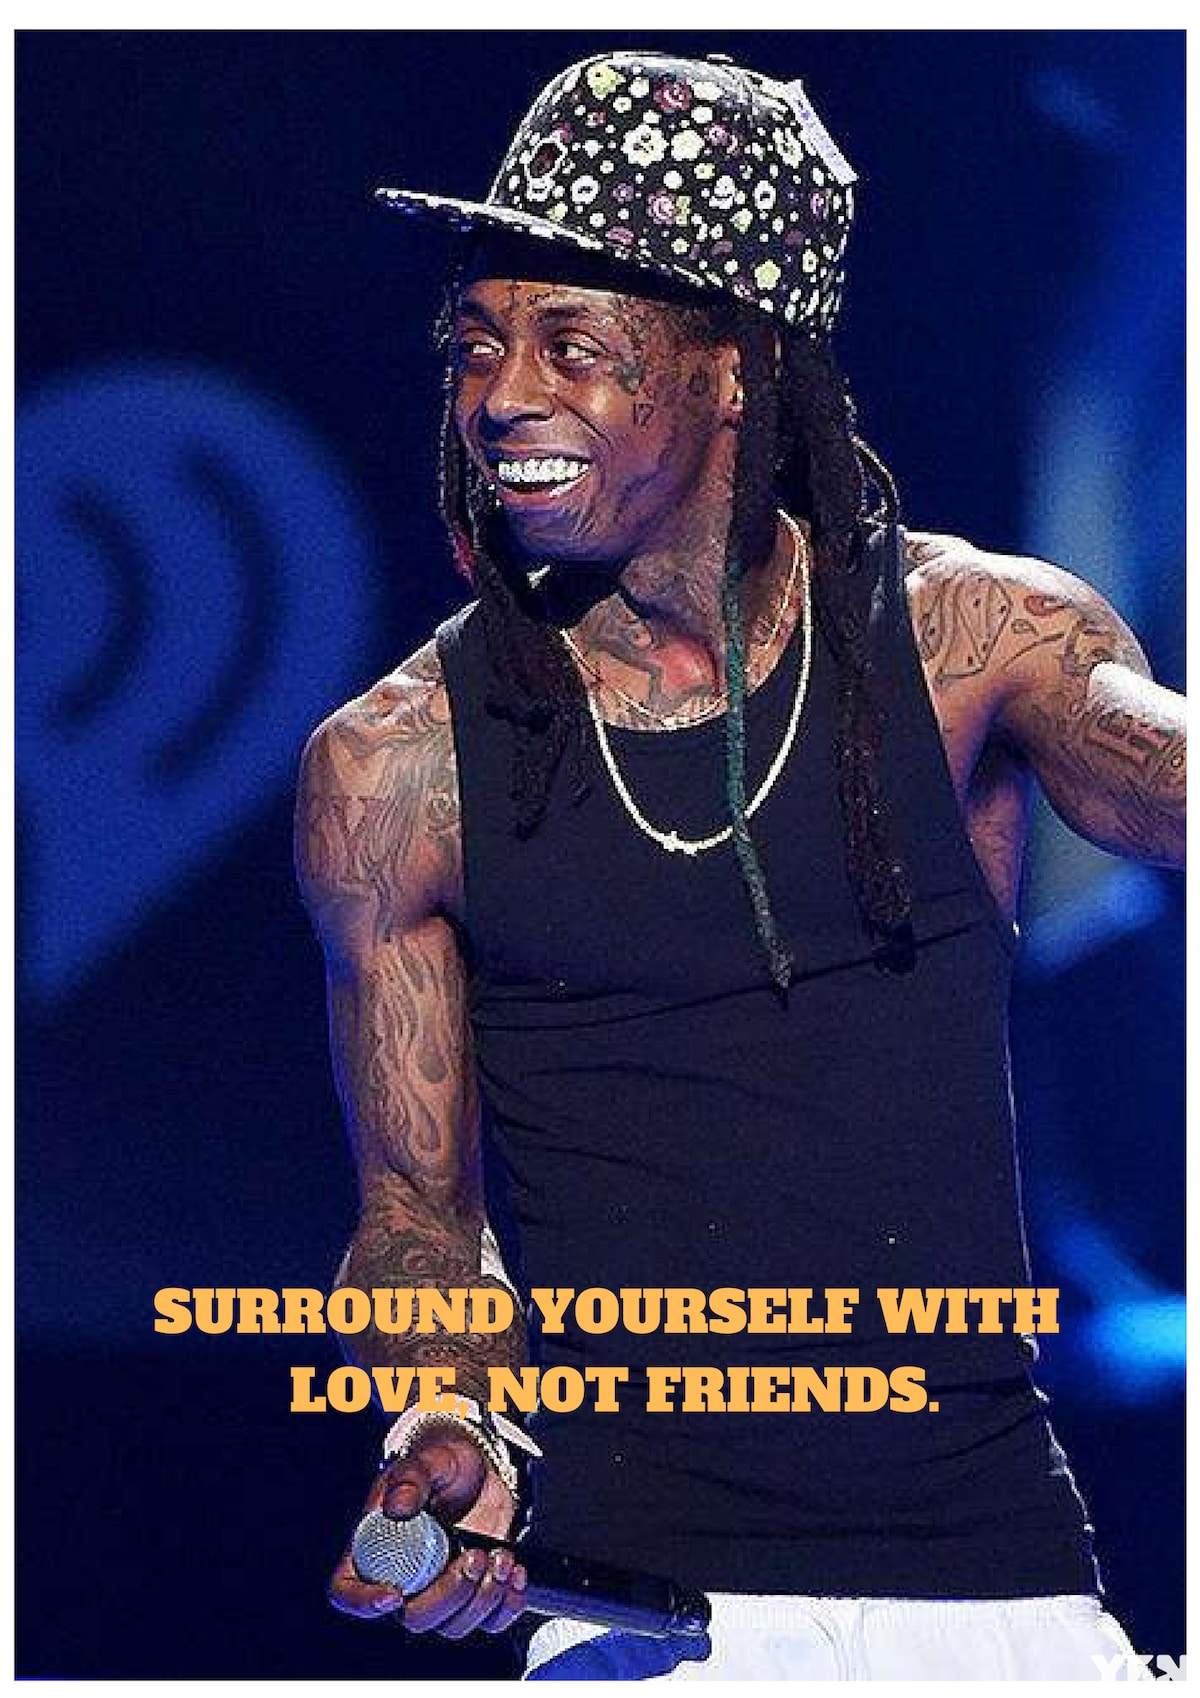 Lil Wayne quotes about friends